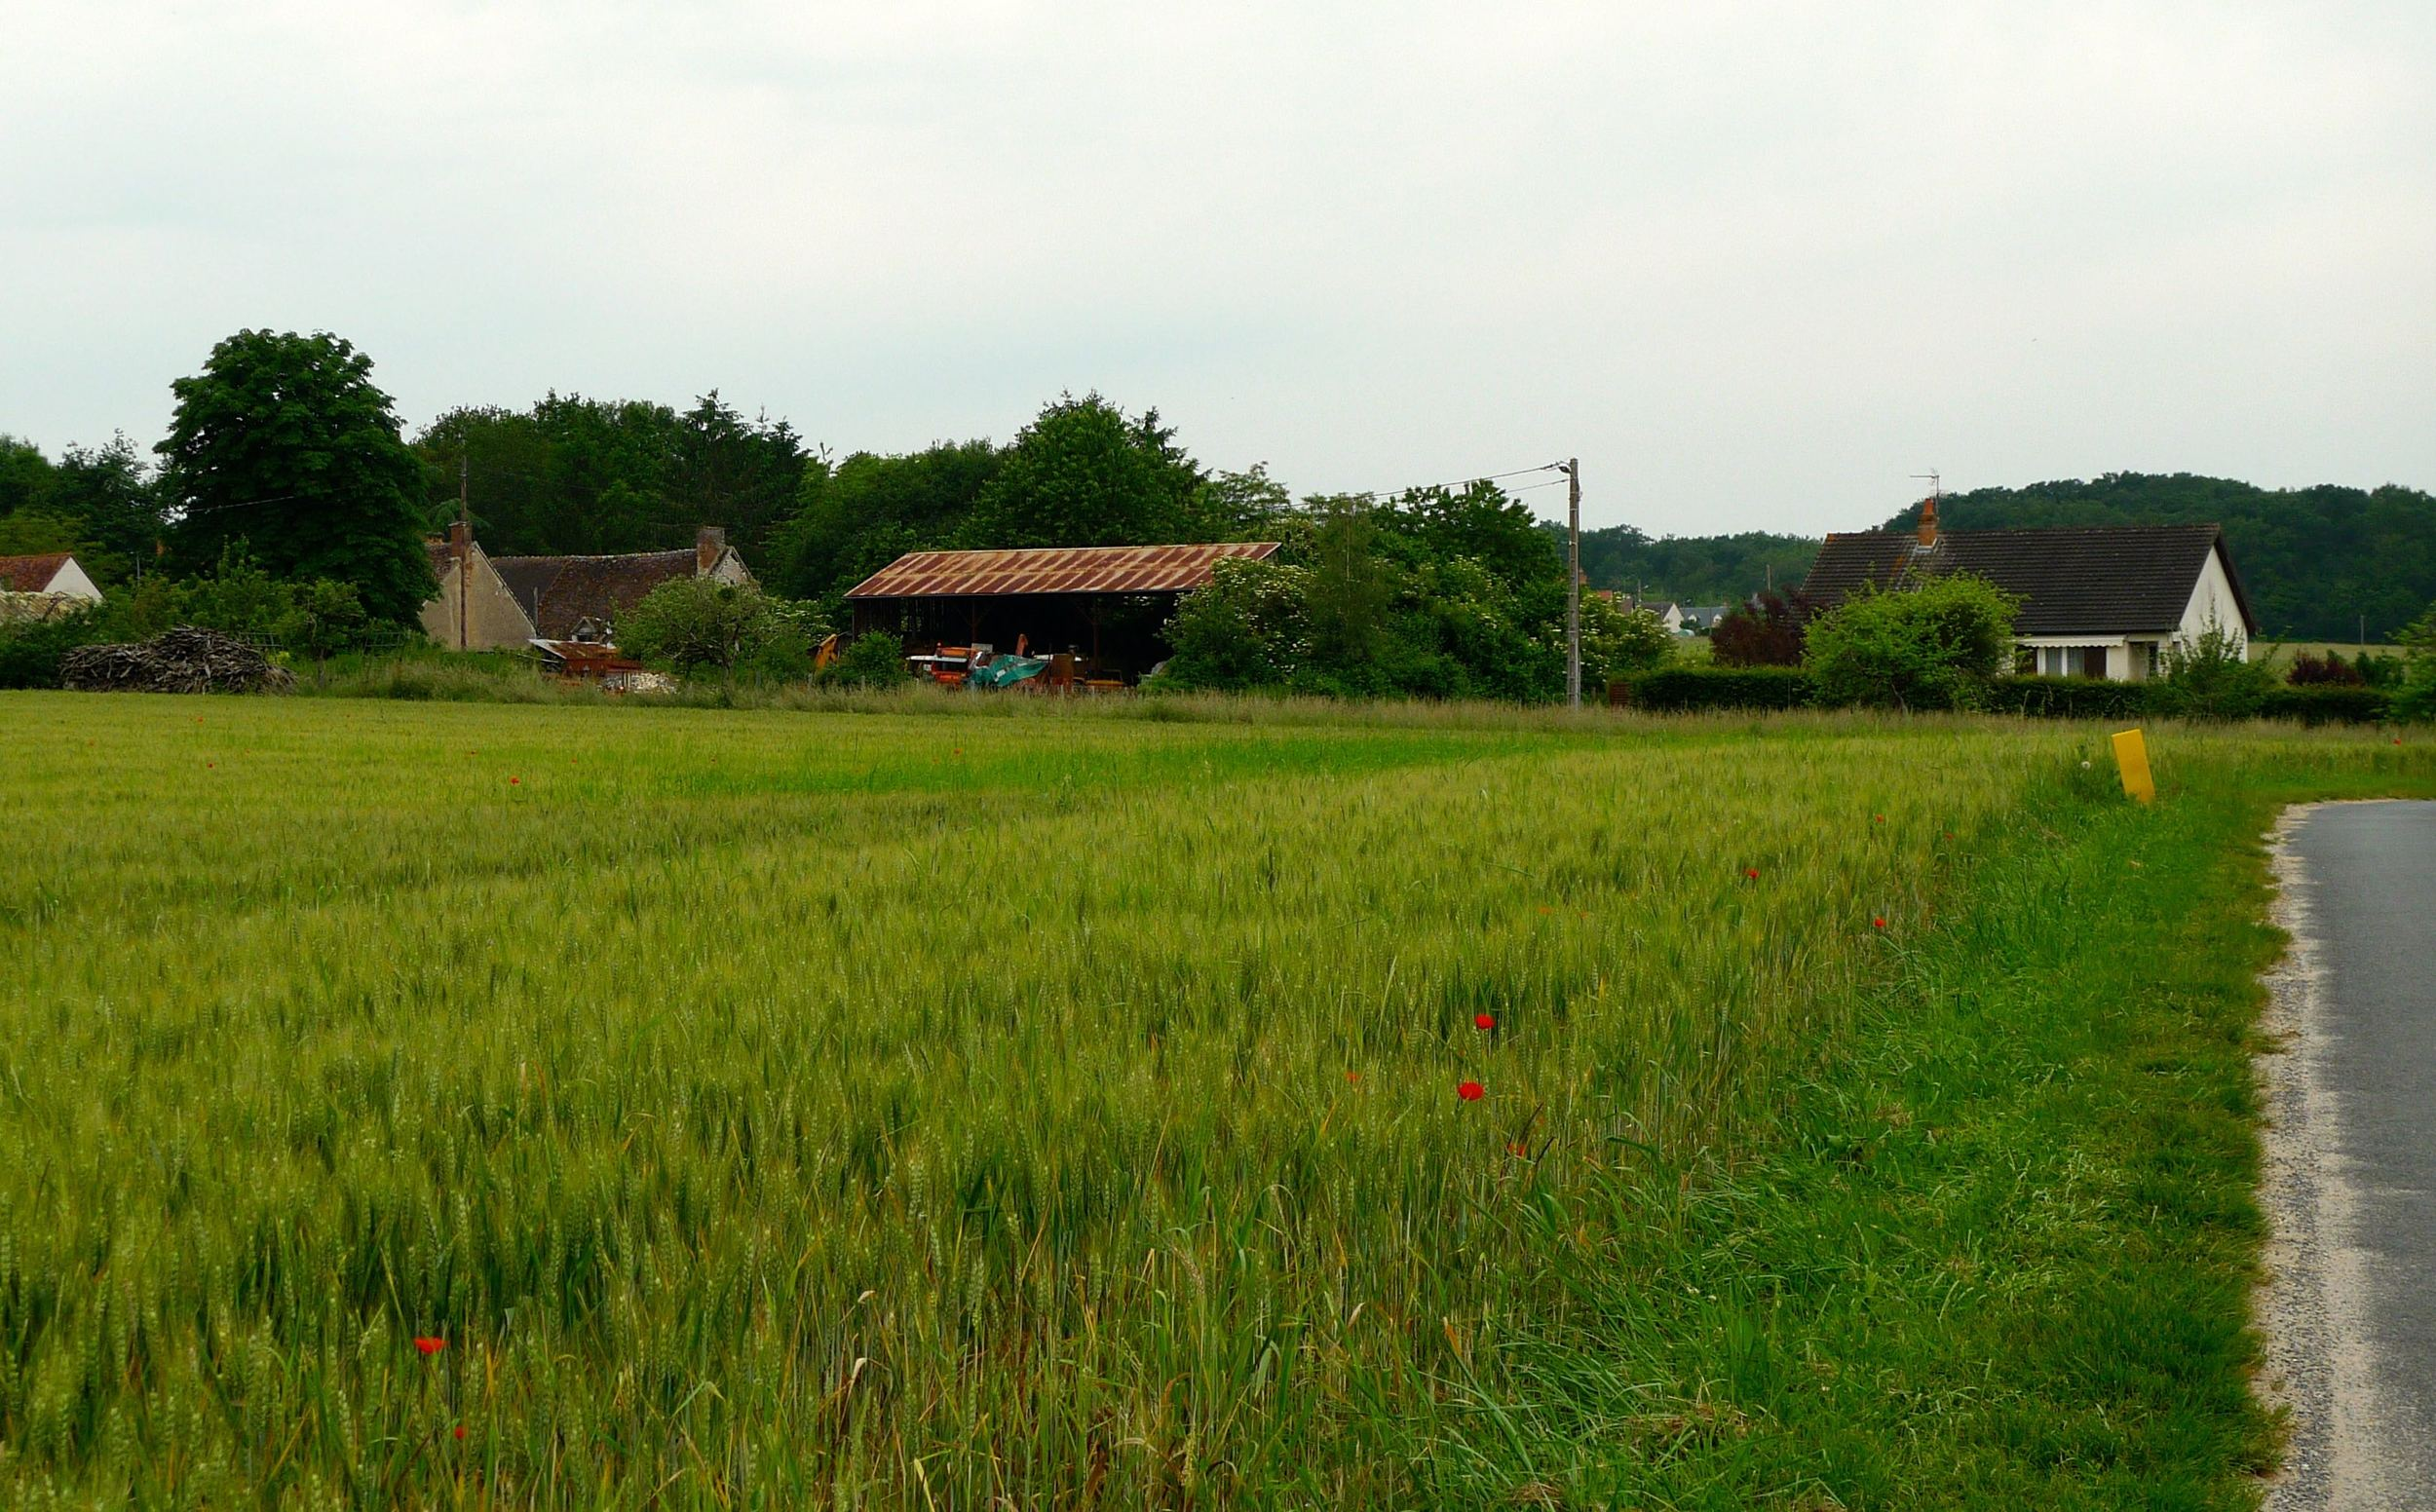 The quiet village close to chateau de beauregard